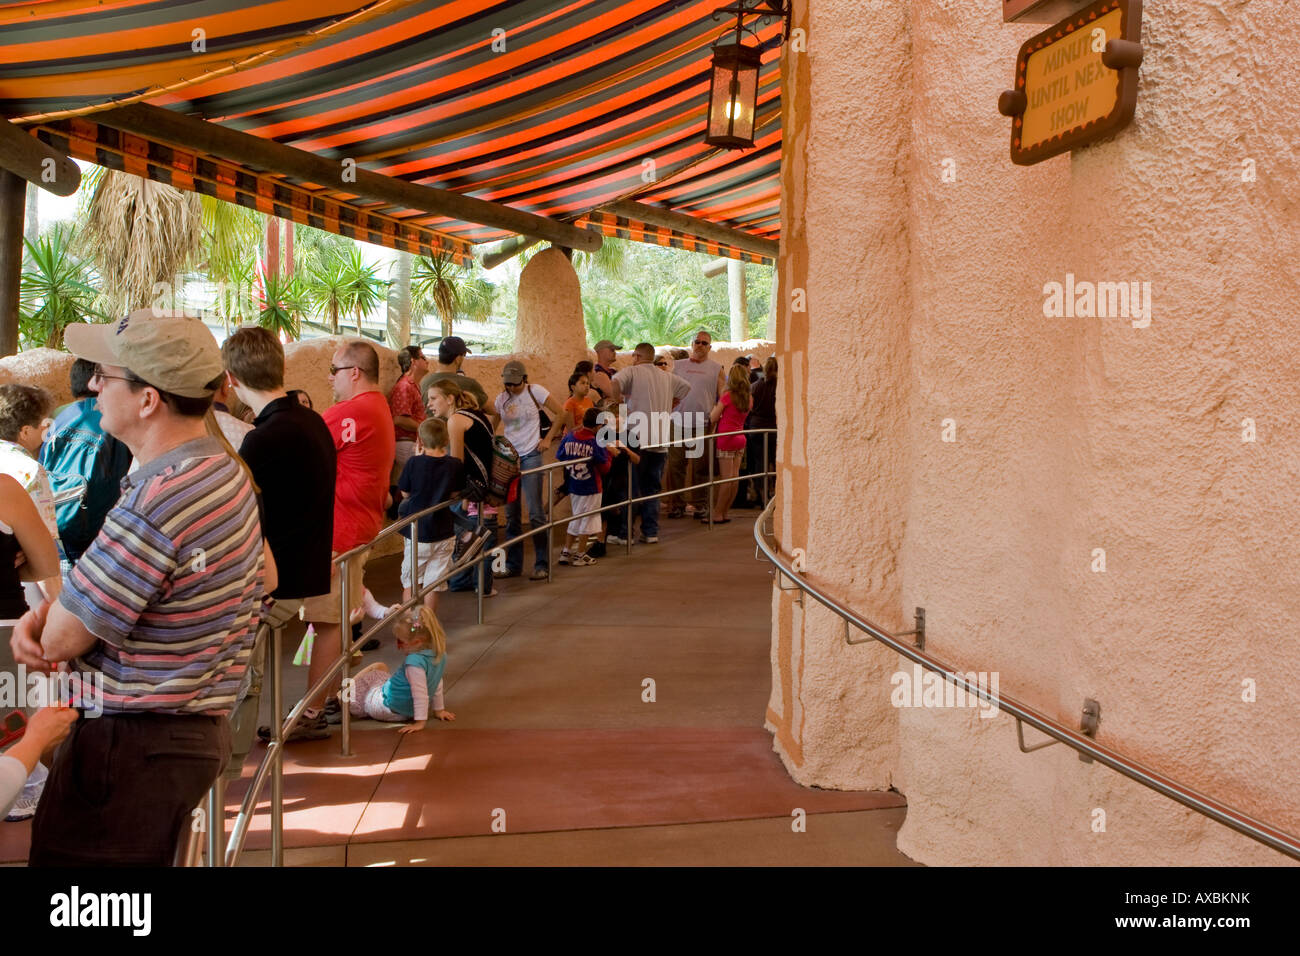 Waiting in line at Busch Gardens in Tampa Florida USA Fl U S Stock ...